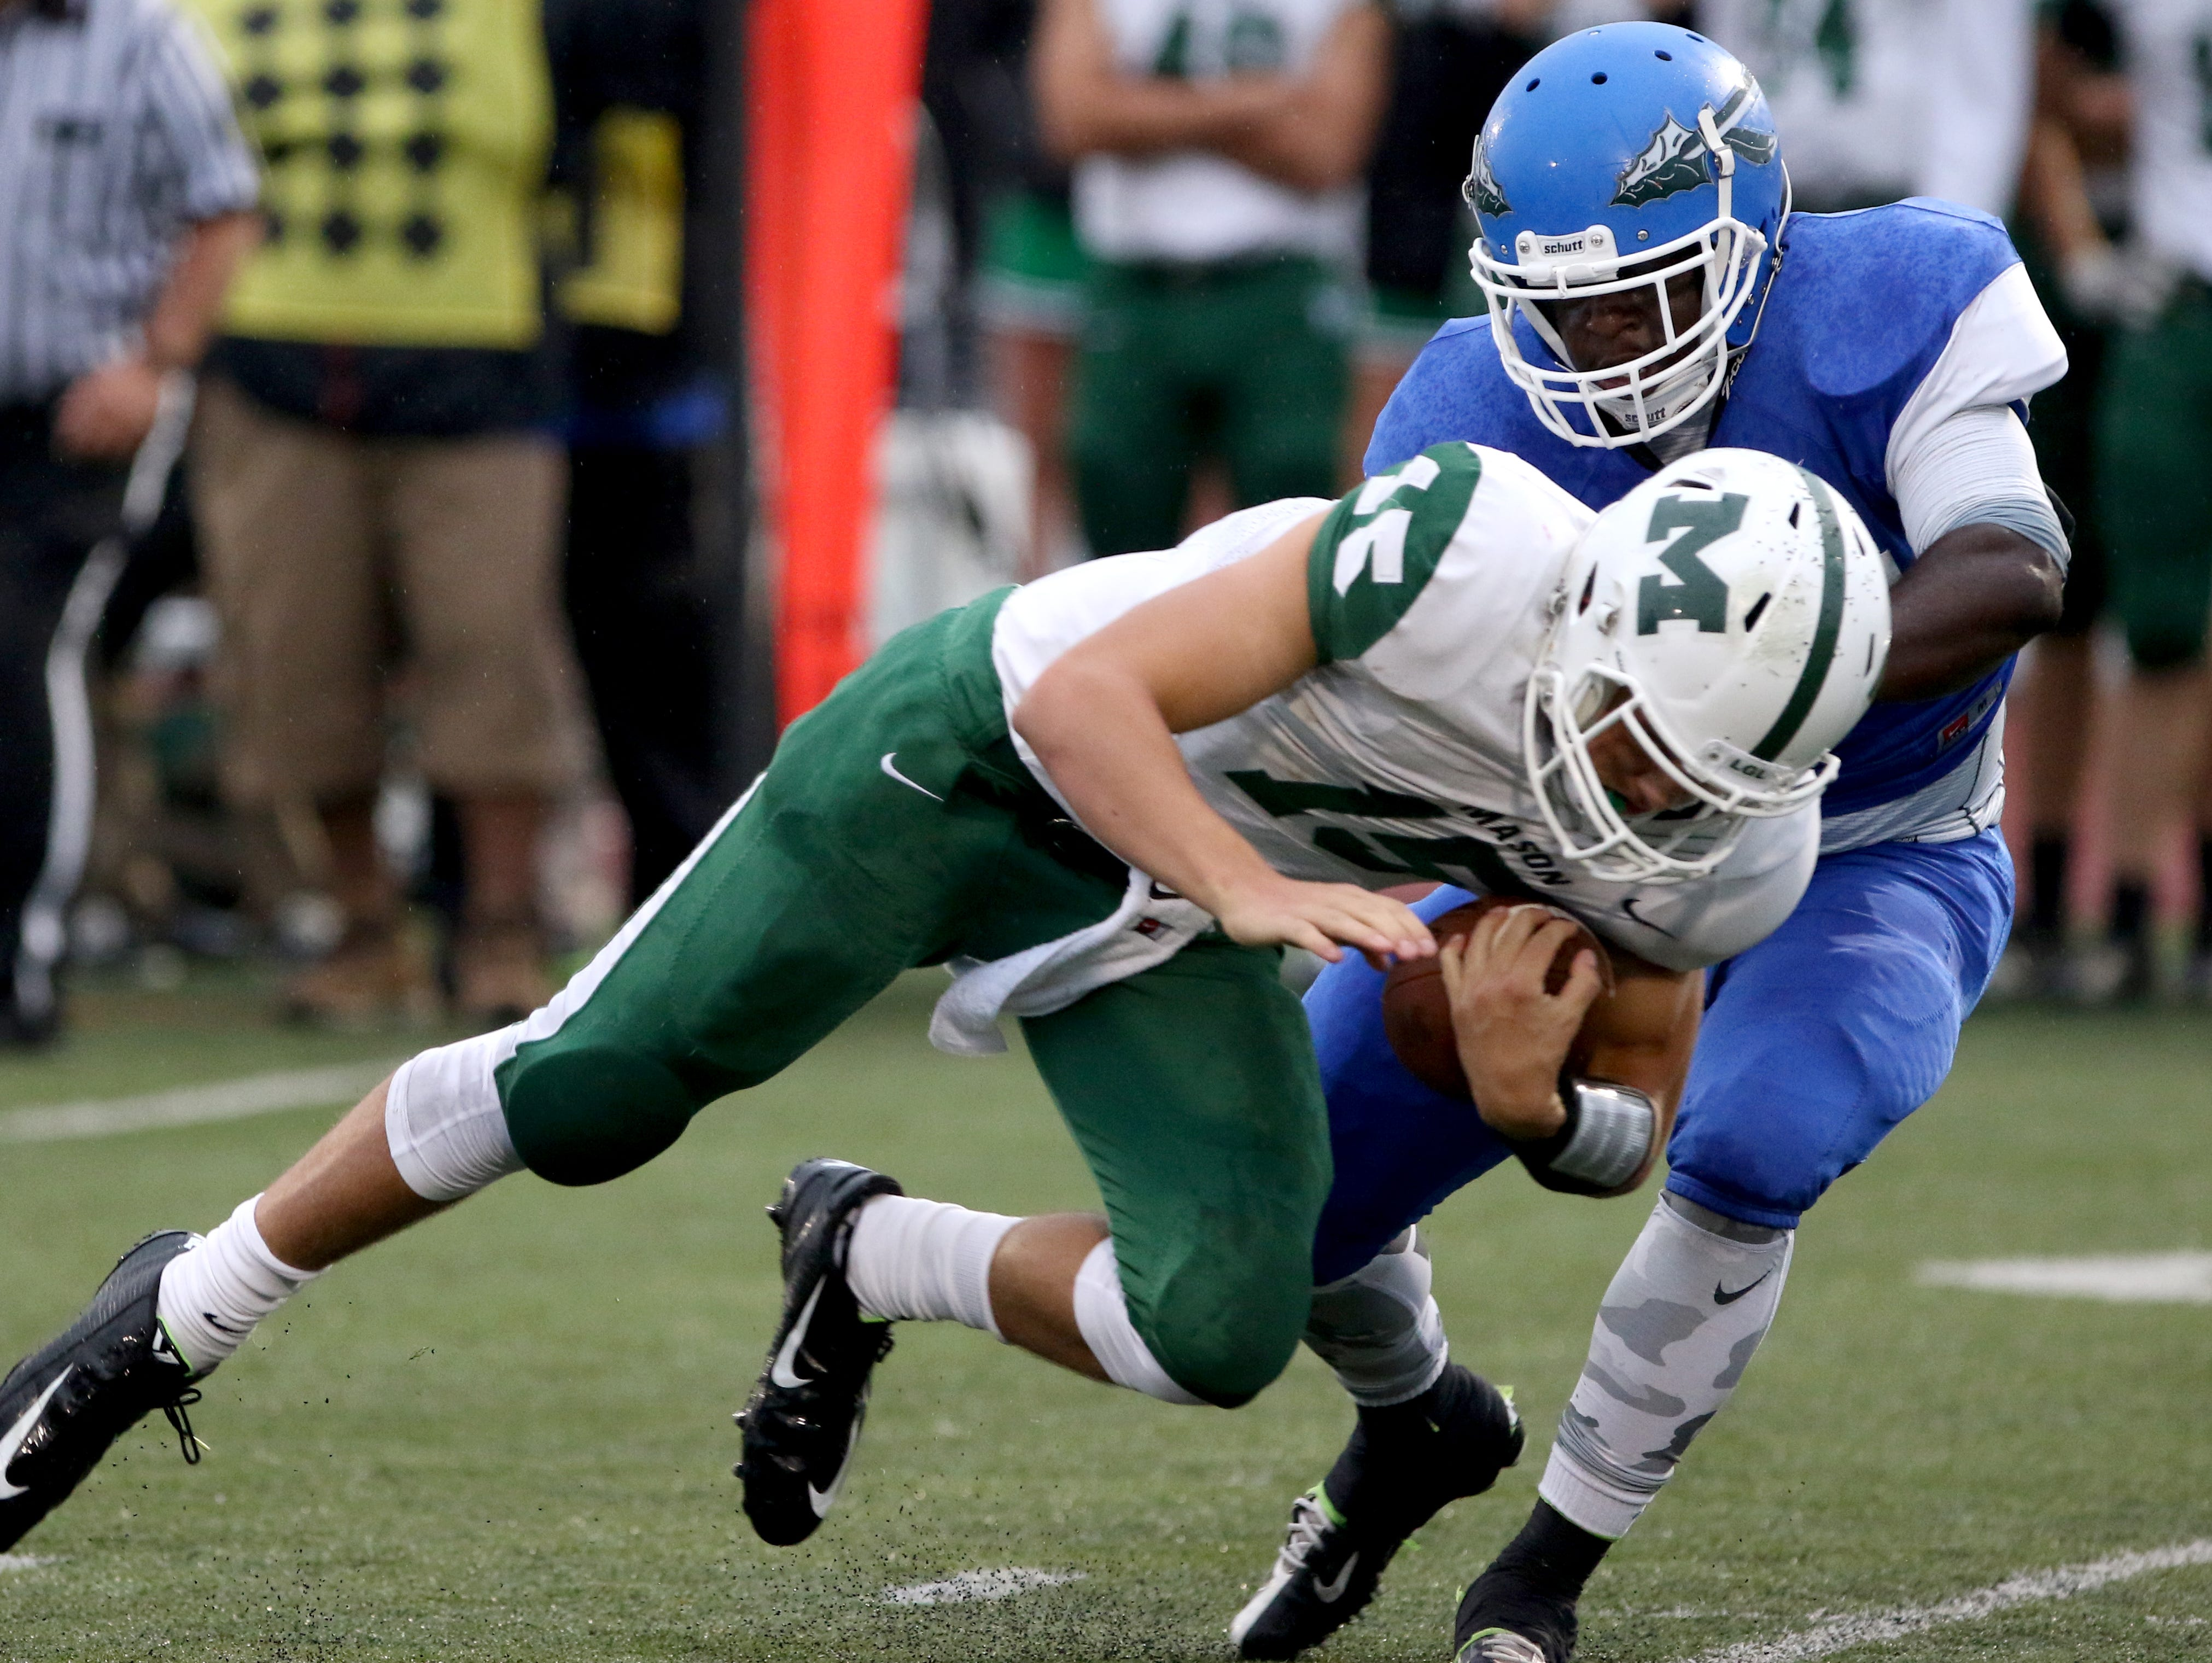 Mason quarterback Preston Hutchinson is sacked by Winton Woods' Kwamane Watson in the first half at Winton Woods High School Friday September 11, 2015.